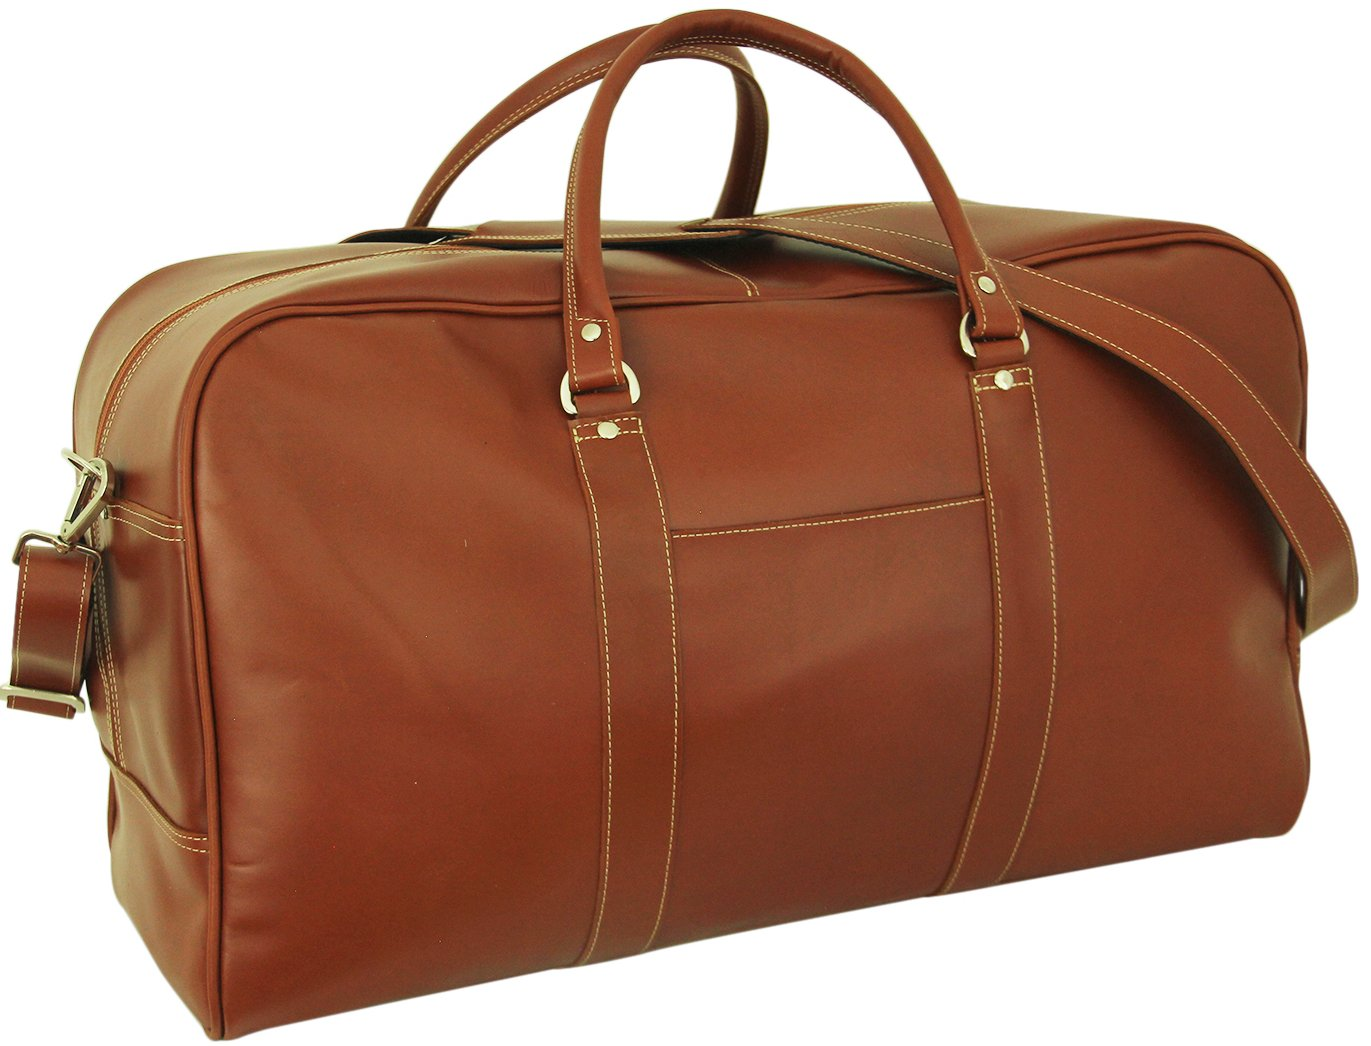 Duffle Bag, Leather, Large Cognac Leather, Large Capacity, Executive, Luxury,, Weeklong Capacity, Removable Strap, Easy Care, Vacation, Work, Carry On,